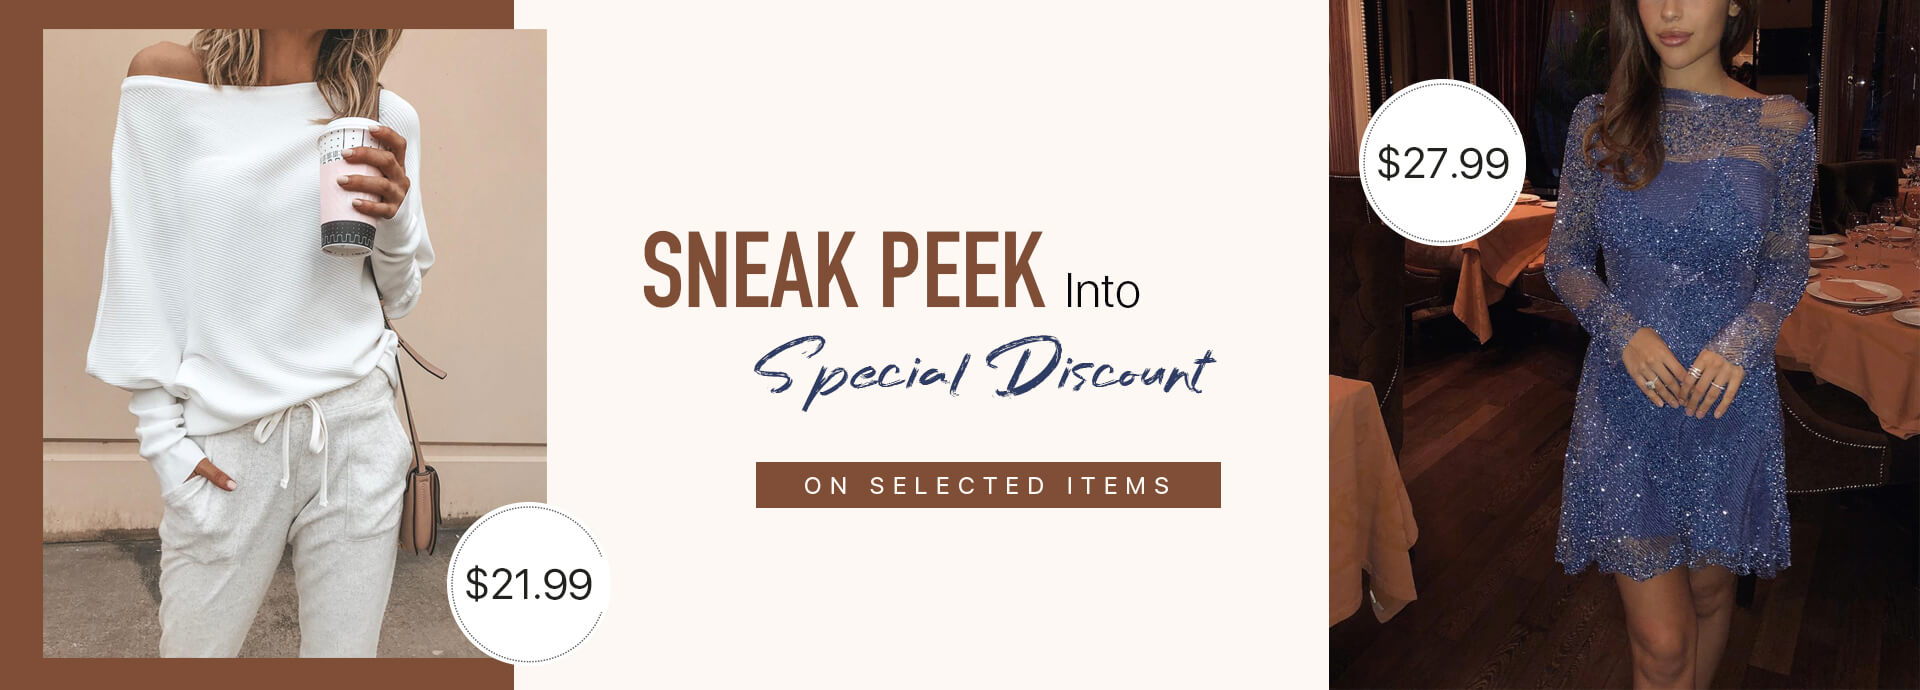 Sneak Peek Into Special Discount